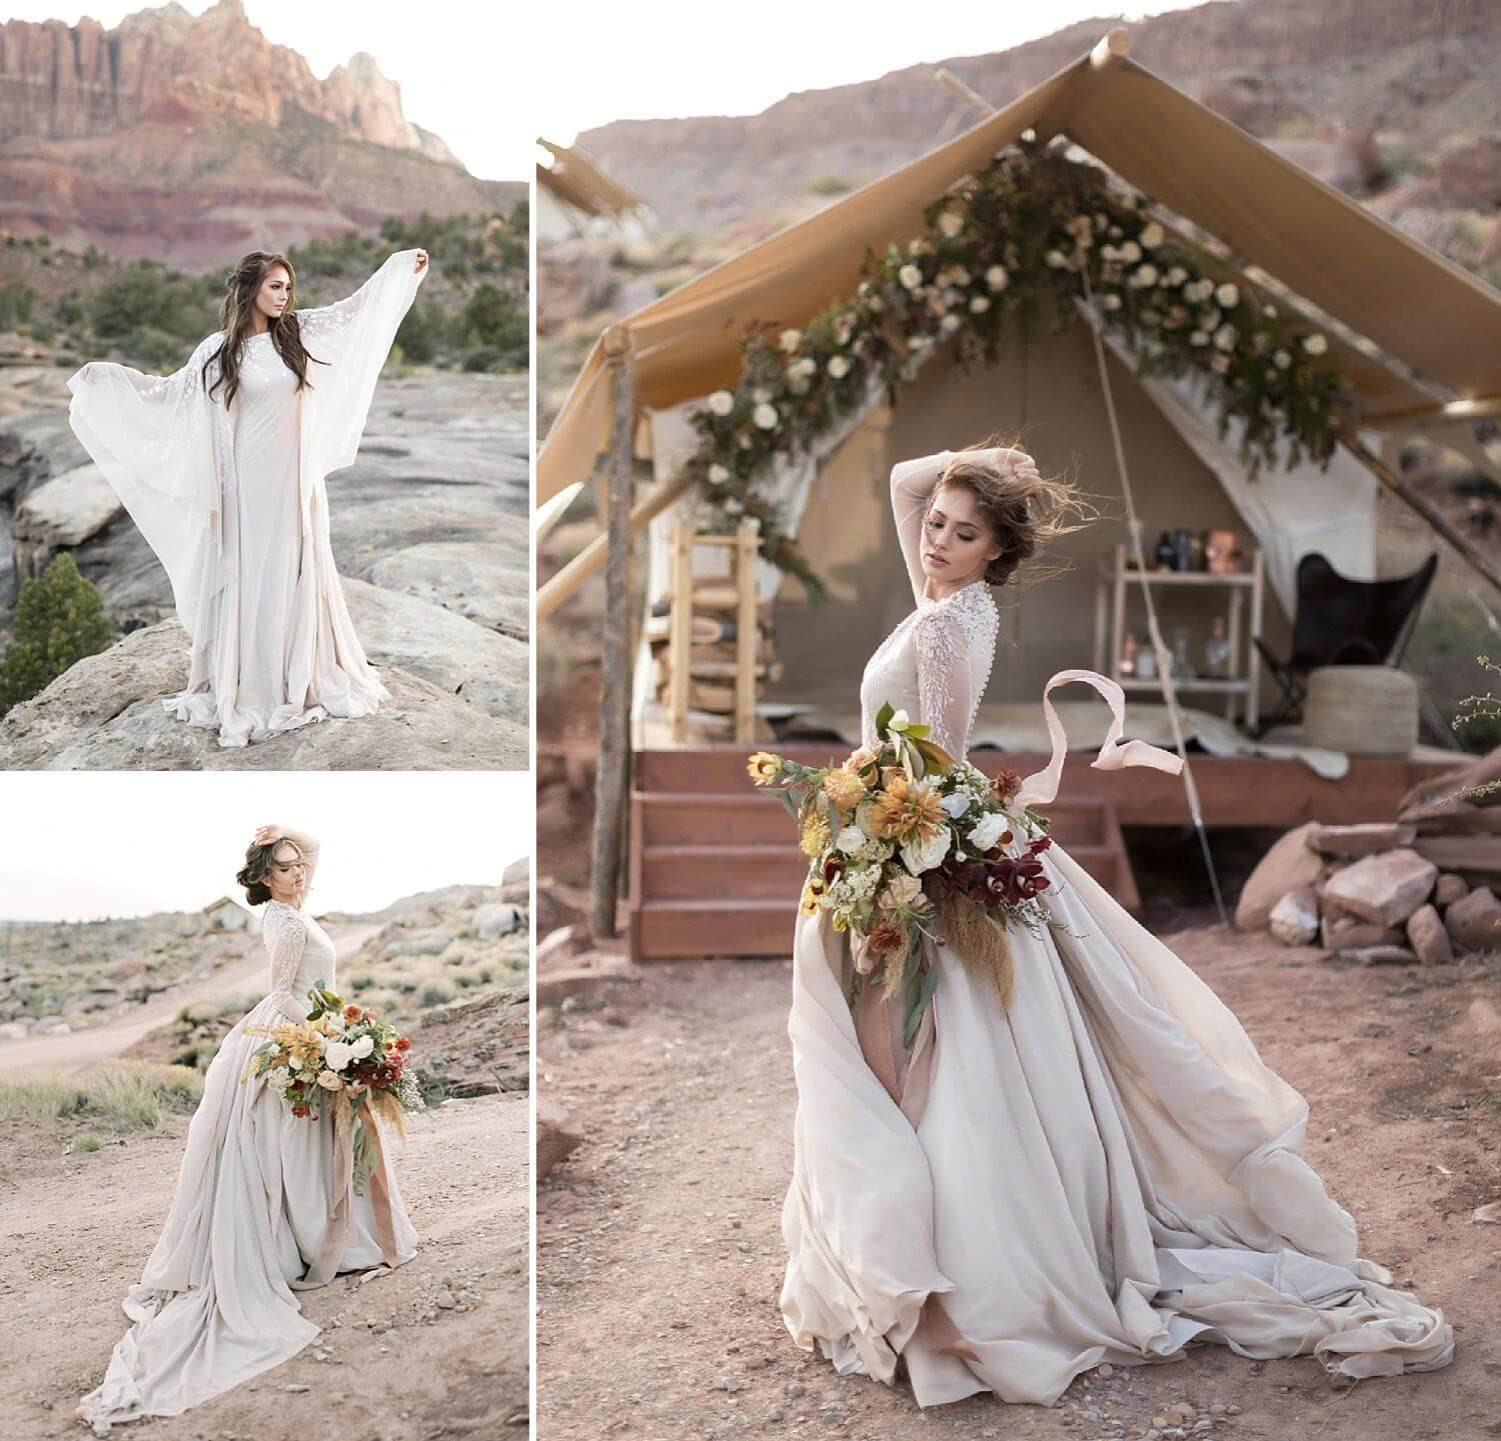 Wedding Dresses For The Modern Boho Bride In Idaho And Beyond,How To Find A Cheap Wedding Dress